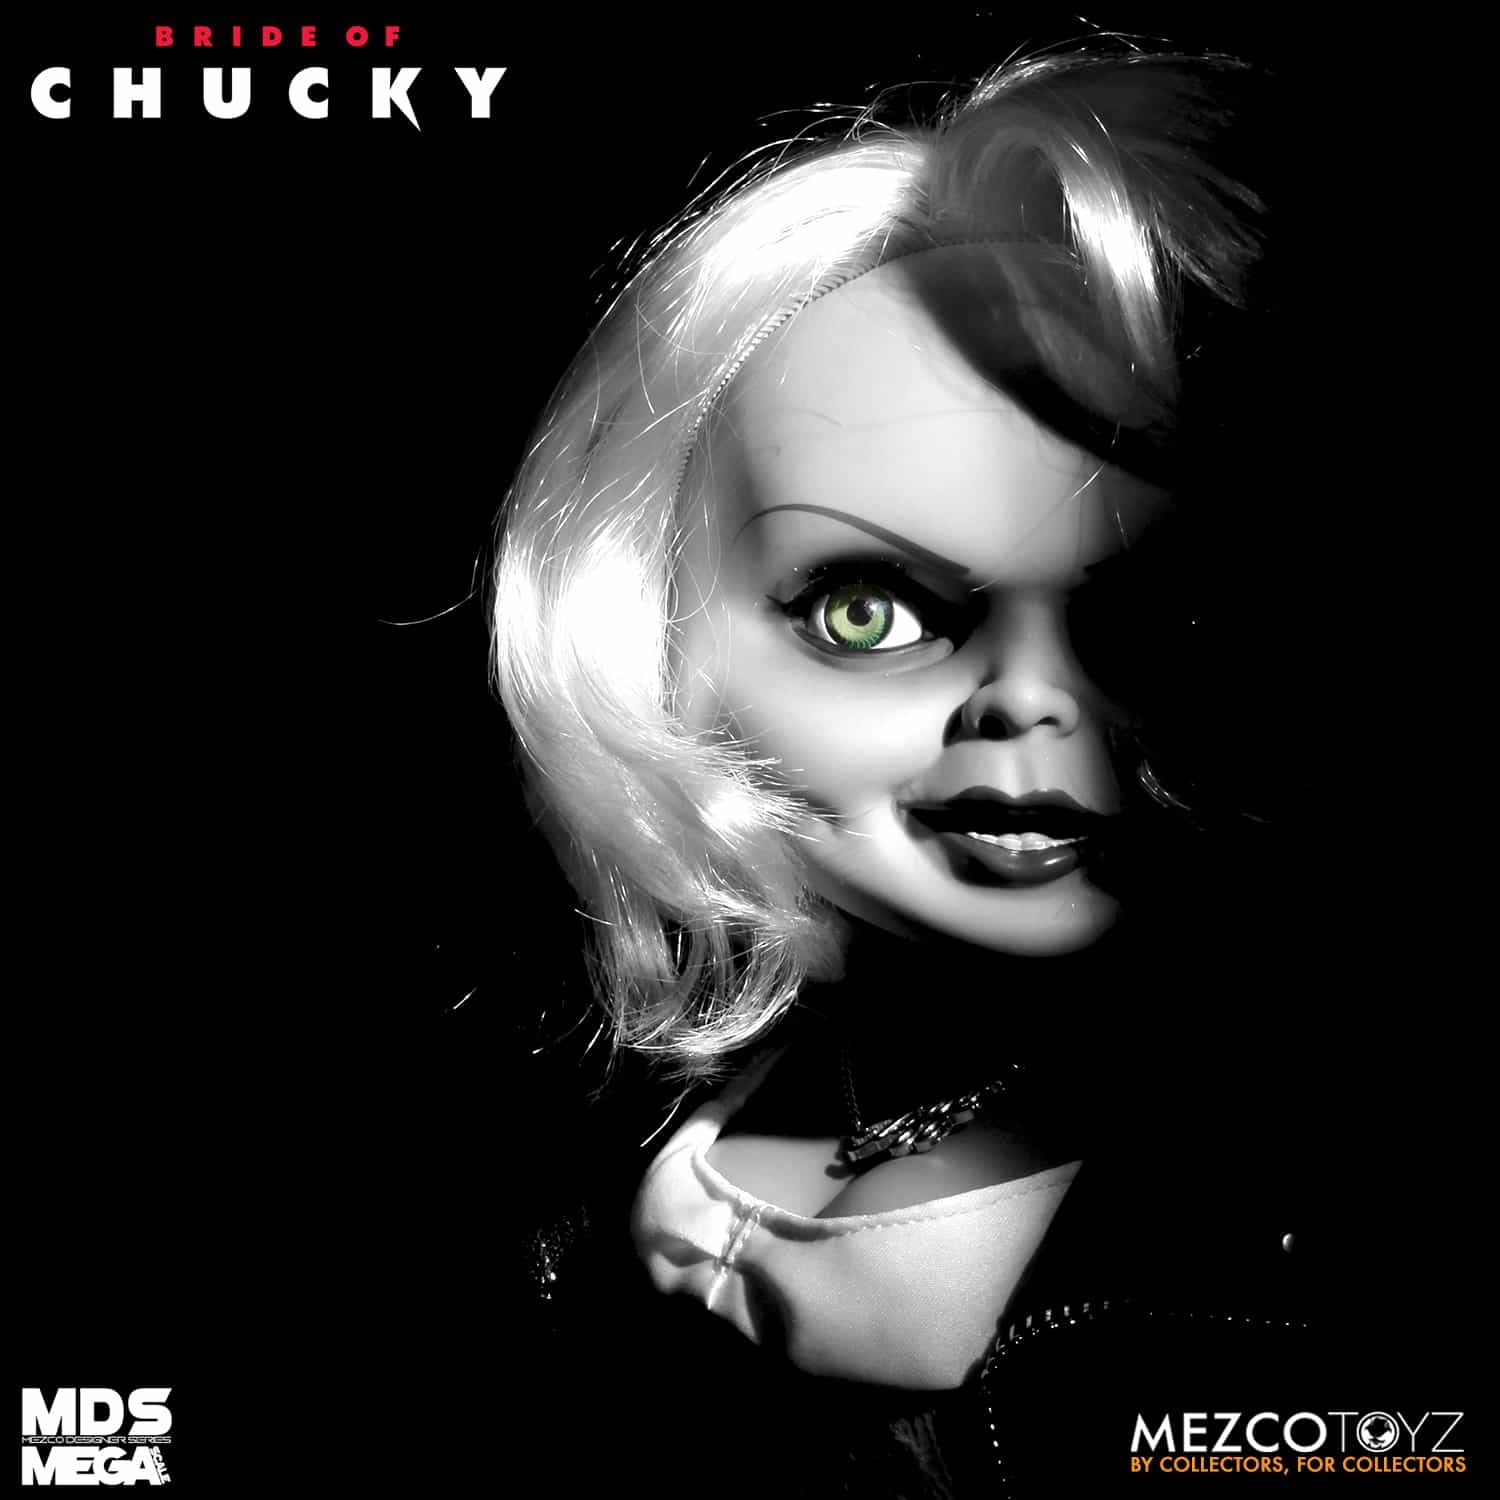 Bride of Chucky: Mega Scale Talking Tiffany 15 inch Action Figure